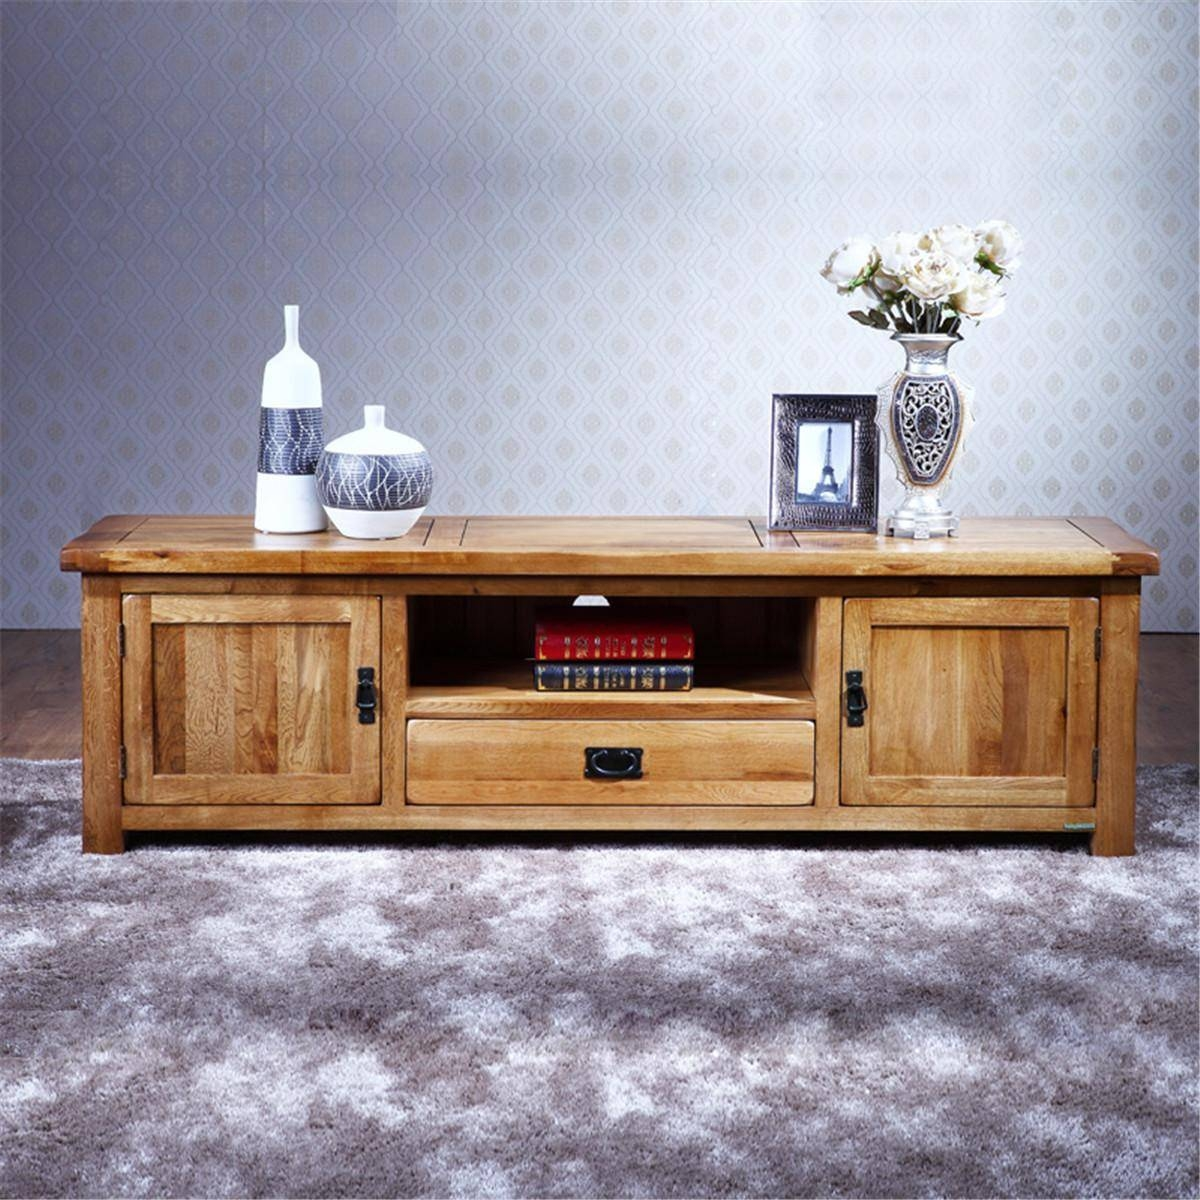 2017 100% Pure Solid Wood Tv Stand Oak Tv Stand Media Console with regard to Solid Oak Tv Cabinets (Image 1 of 15)